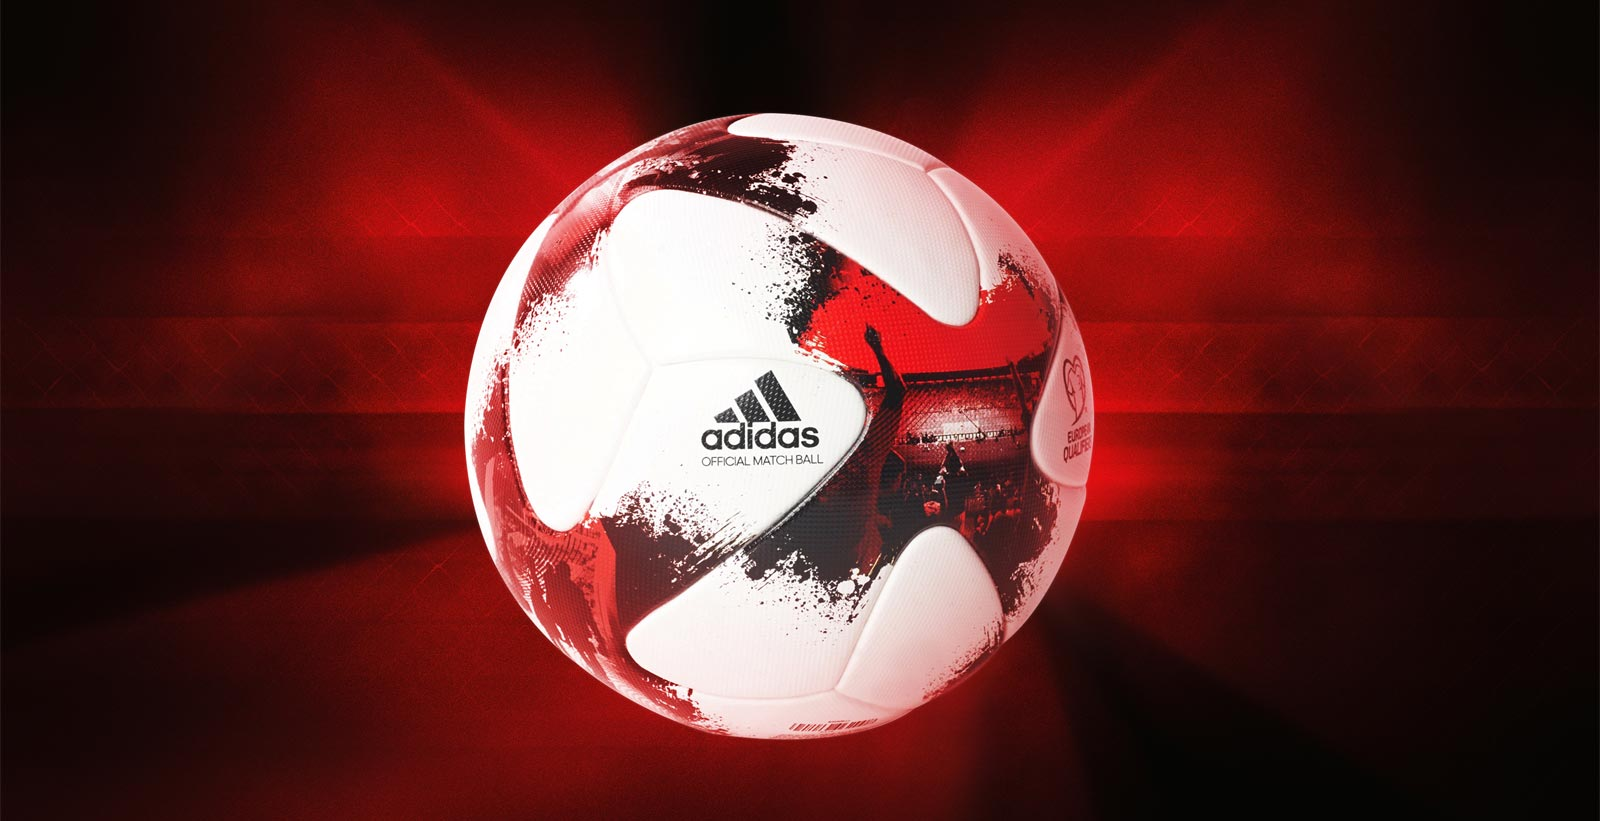 adidas 2018 world cup european qualifiers released